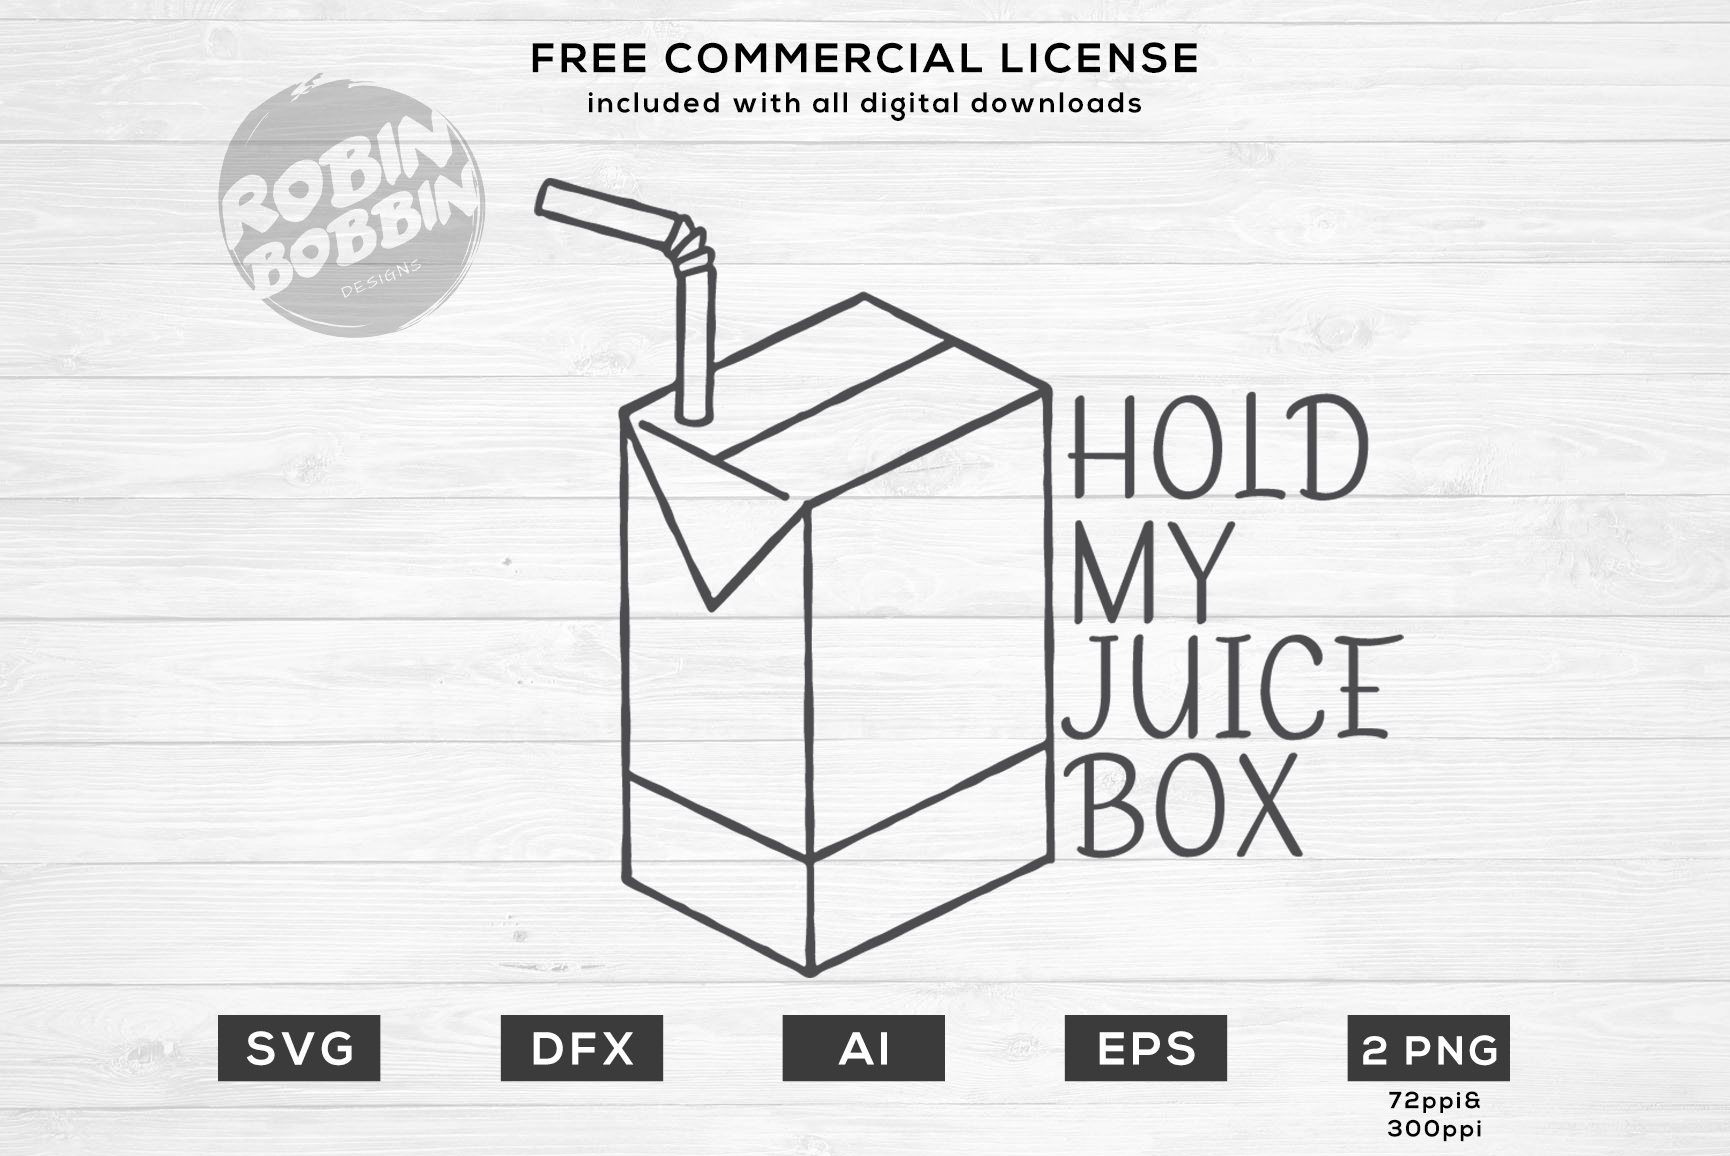 Hold My Juice Box Design for T-Shirt, Hoodies, Mugs and more example image 1